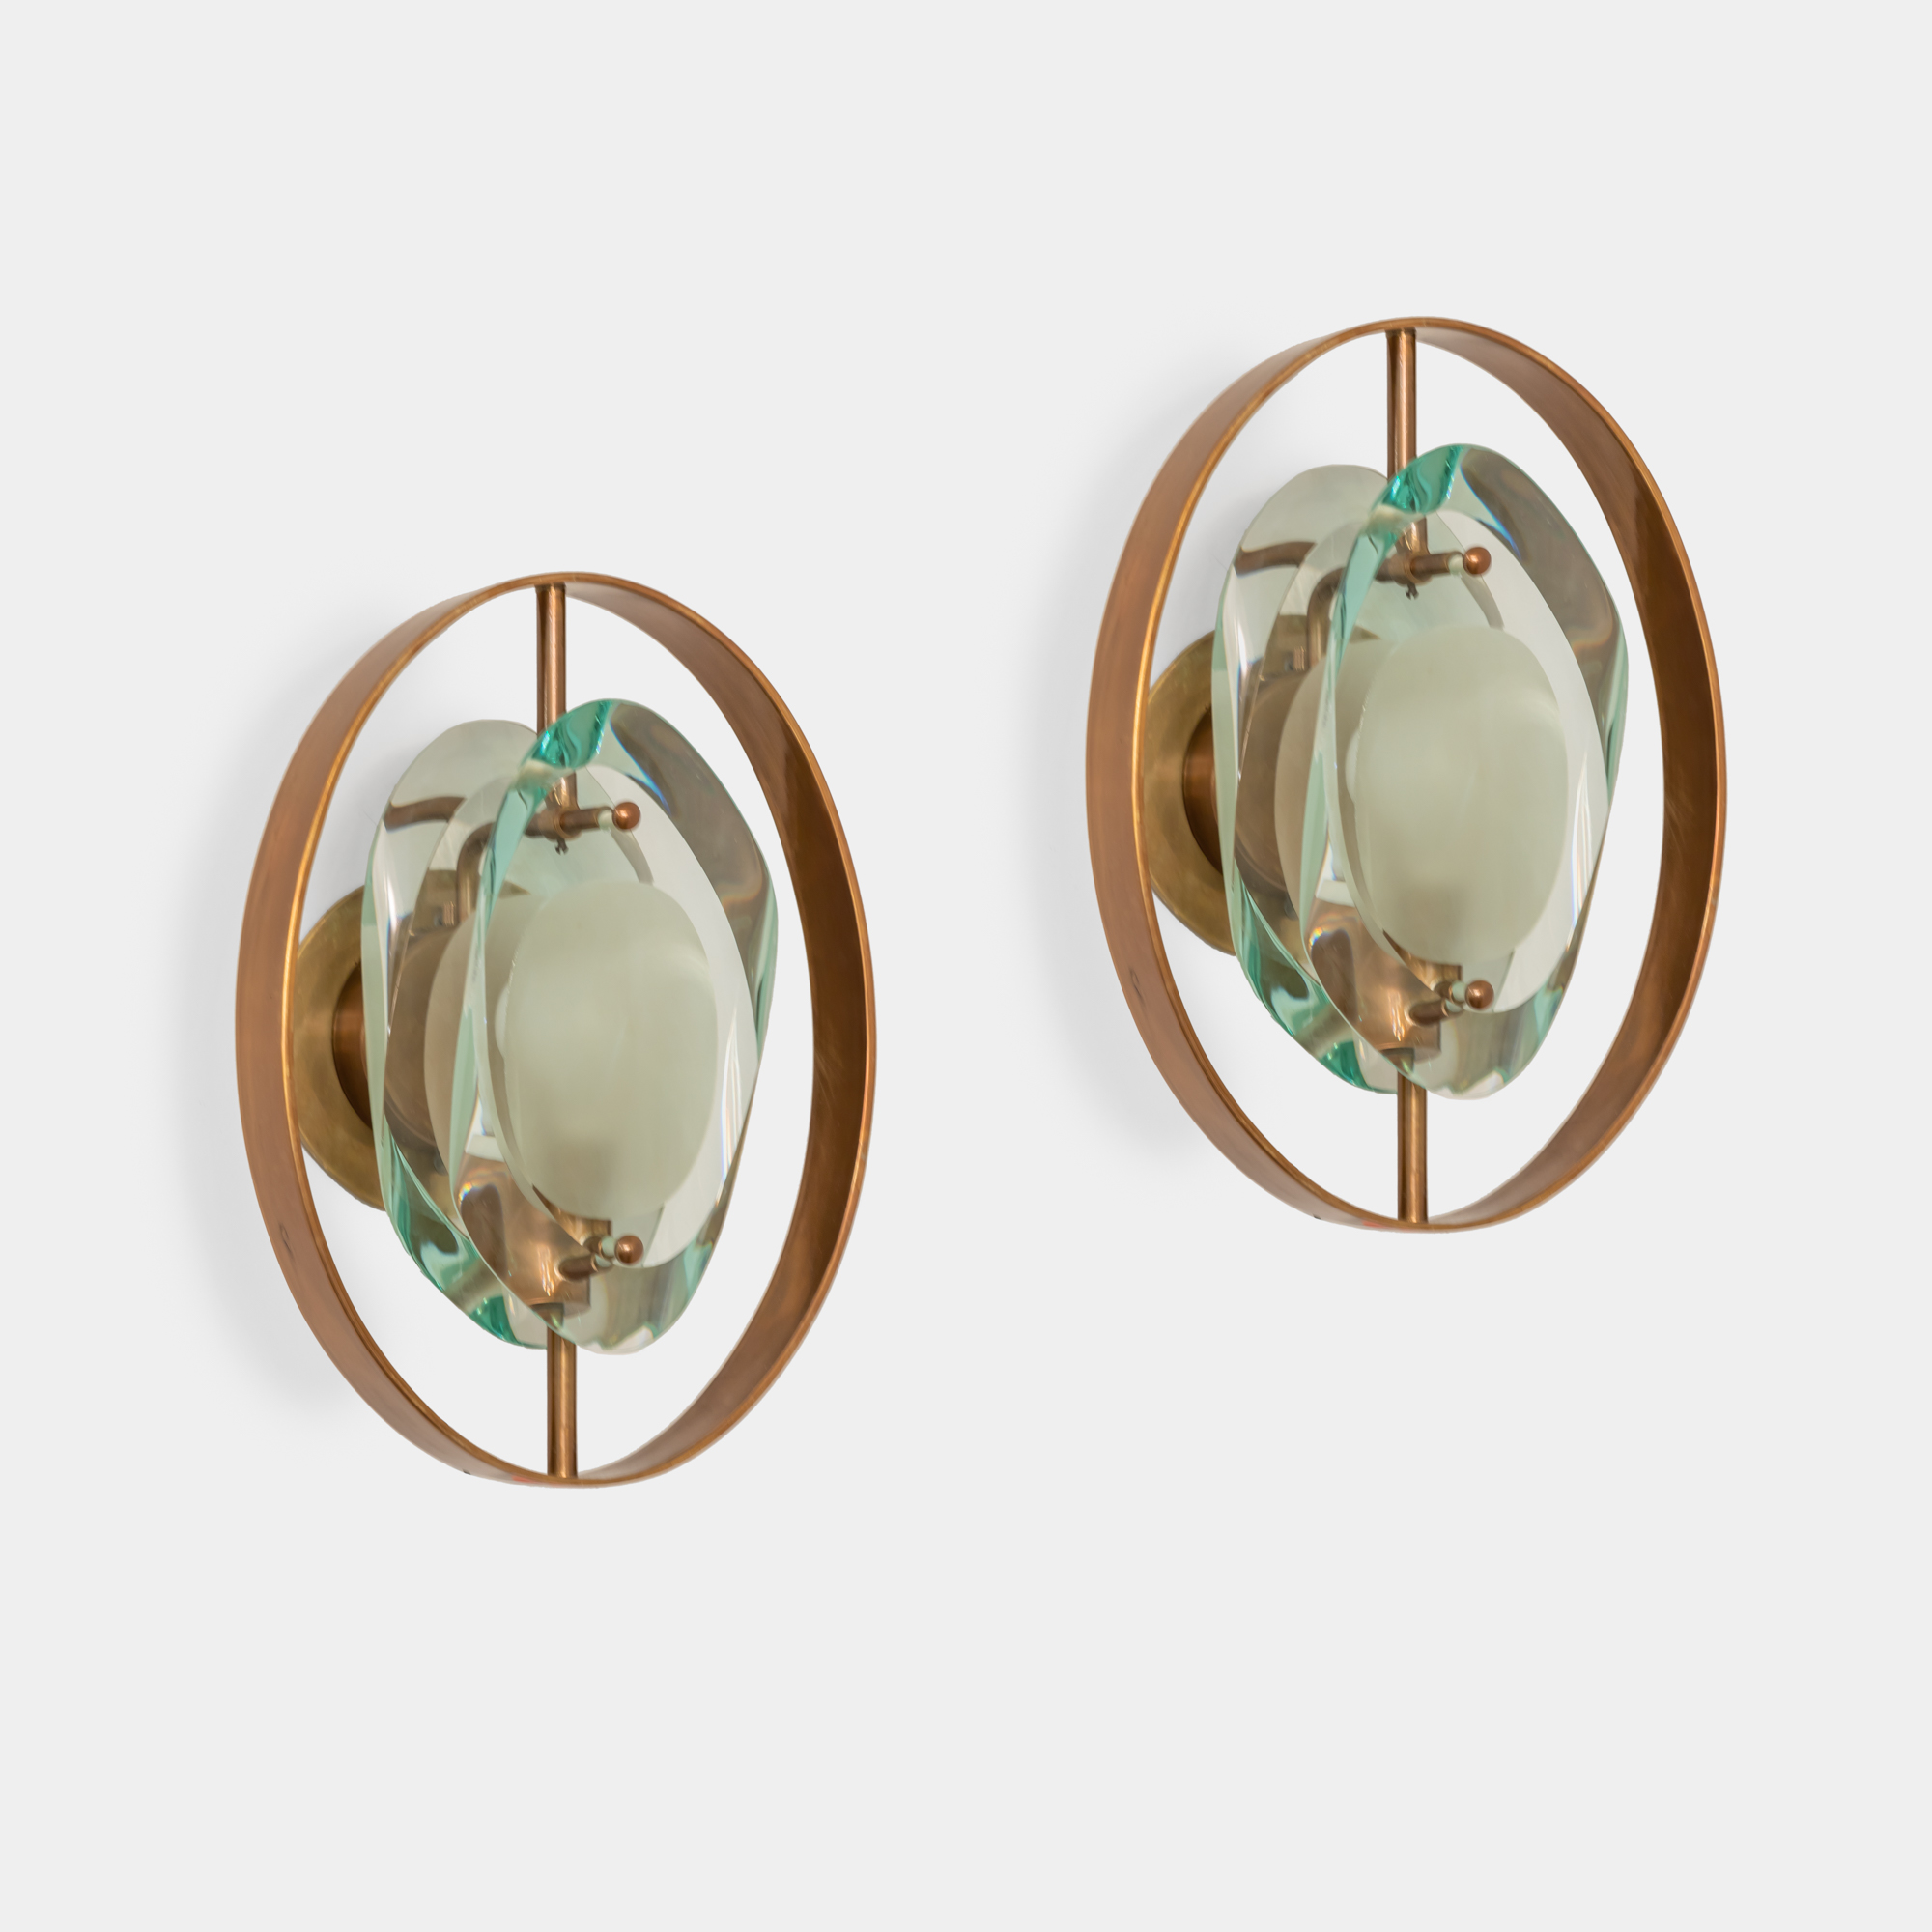 Rare Pair of 'Micro' Sconces Model 2240 by Max Ingrand for Fontana Arte | soyun k.